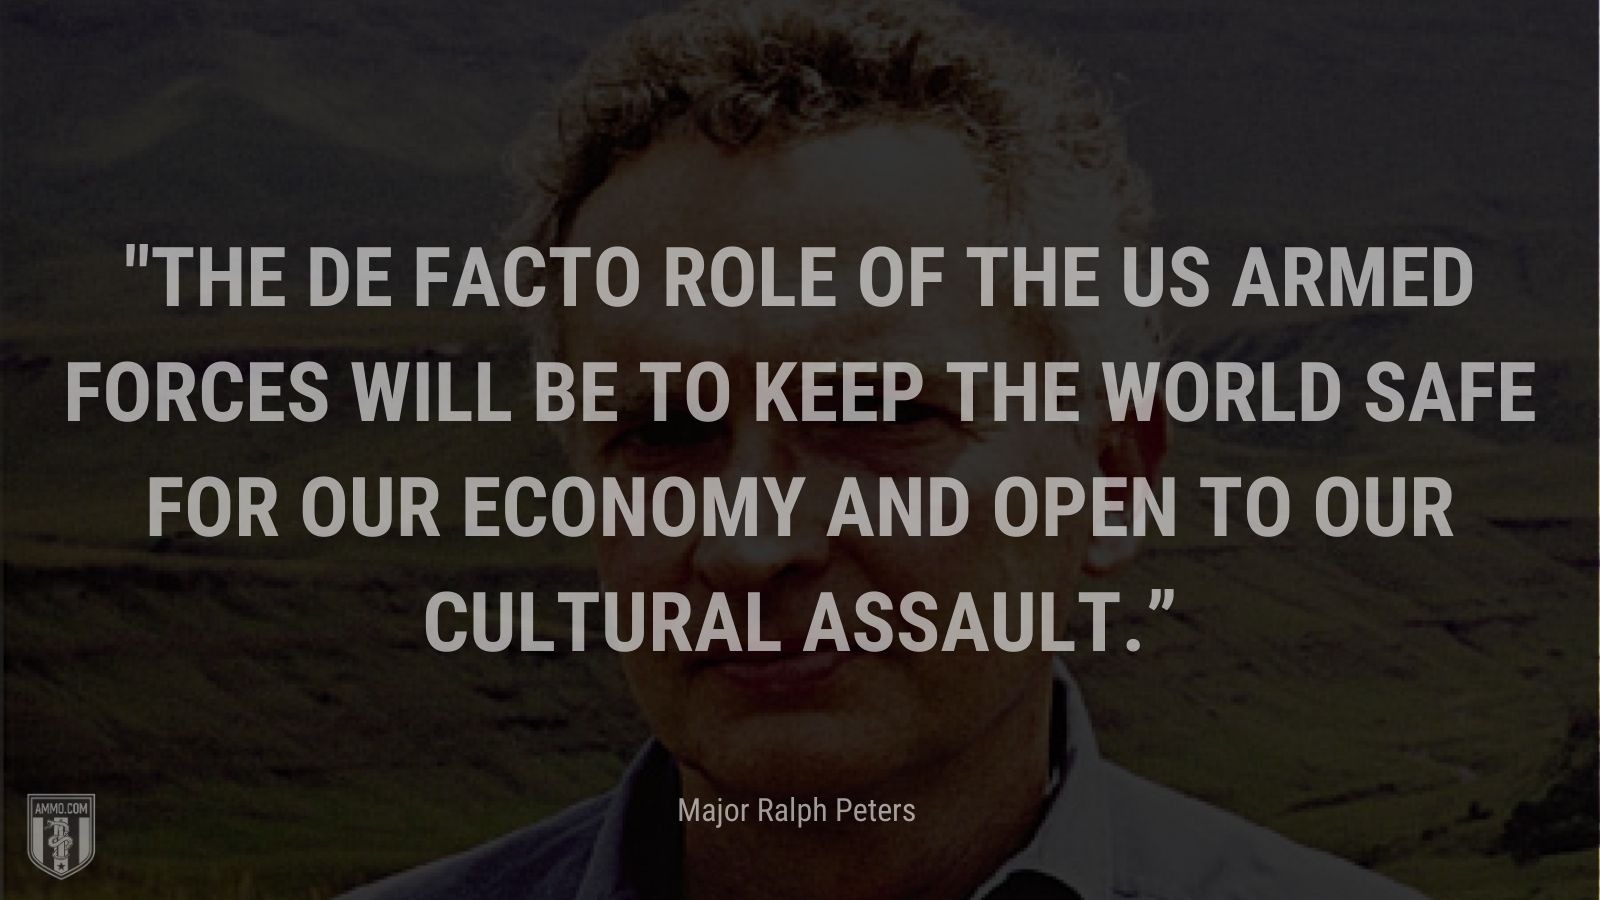 """""""The de facto role of the US armed forces will be to keep the world safe for our economy and open to our cultural assault."""" - Major Ralph Peters"""